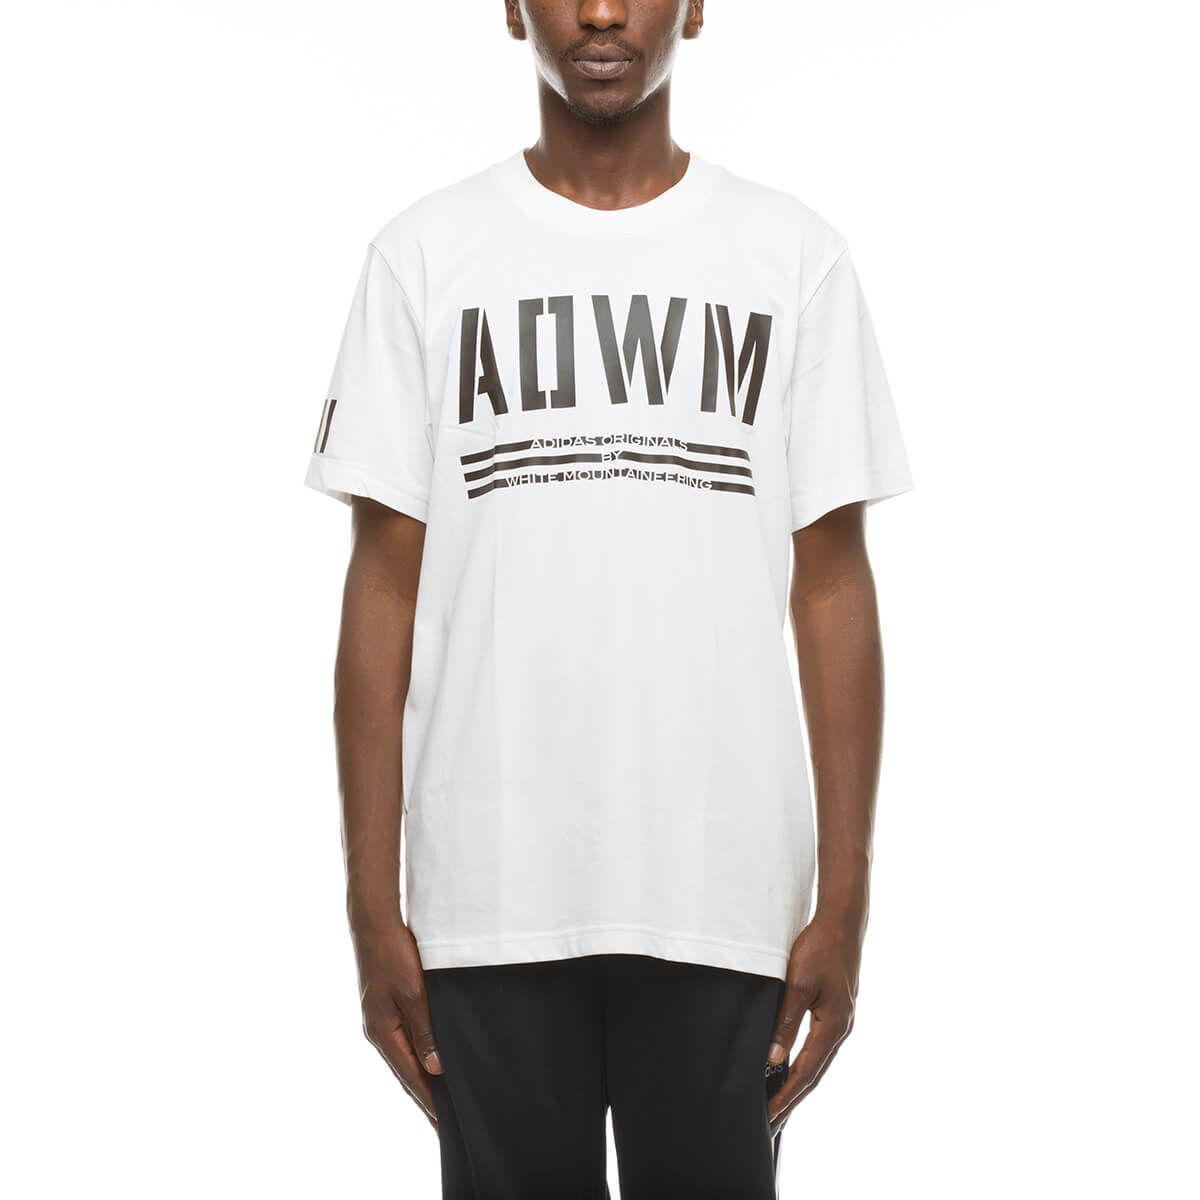 Adidas Originals x White Mountaineering Wm T-shirt